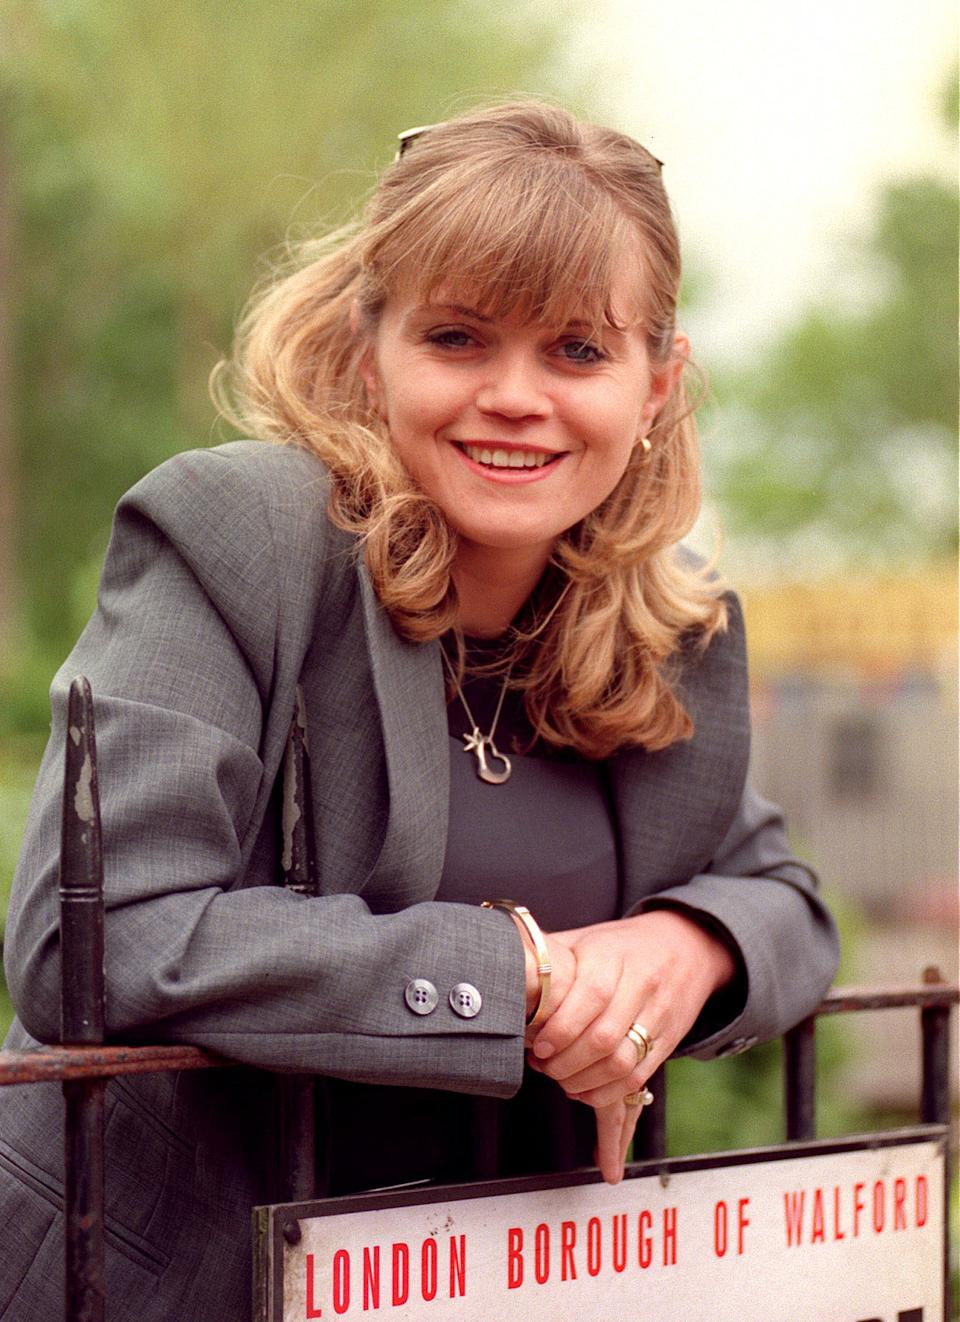 Actress Danniella Morgan (formerly Danniella Westbrook) is returning to television's Eastenders, as Ricky Butcher's ex-wife, and the Mitchell brothers' younger sister, Samantha.  * 11/5/1999 of actress Danniella Westbrook, who said she would have died from her drug use if she had not checked into a rehab clinic in Arizona earlier this year. The former EastEnder star, who had a long cocaine habit, had begun to use valium and collapsed at her manager Cheryl Barrymore's house before she started receiving treatment in the US. But Westbrook - who gave birth to her second child Jodie last month - told OK! magazine that she has now been clean for seven months and her family life gave her a new incentive to stay off drugs.   (Photo by Andrew Stuart - PA Images/PA Images via Getty Images)